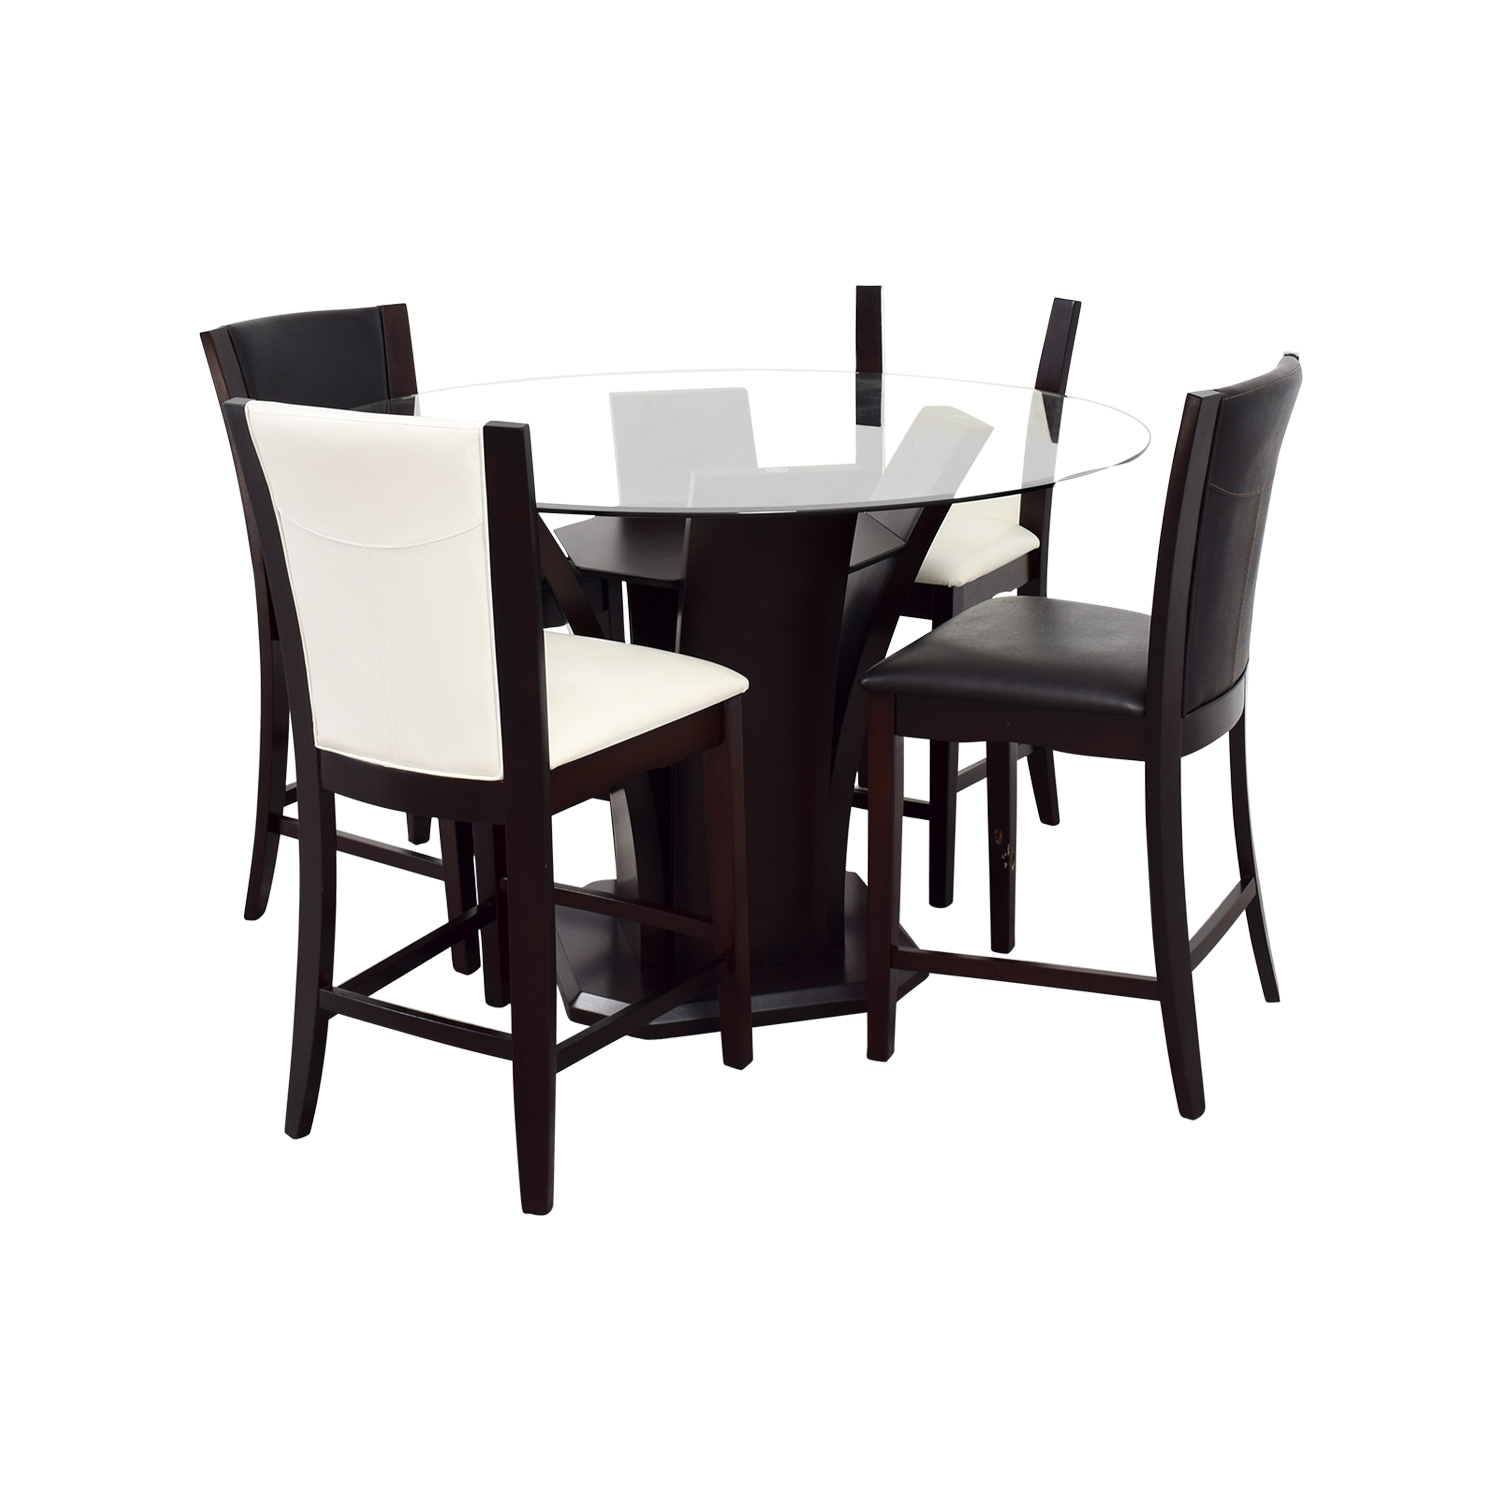 90 off raymour flanigan raymour flanigan black and for Black and white dining set